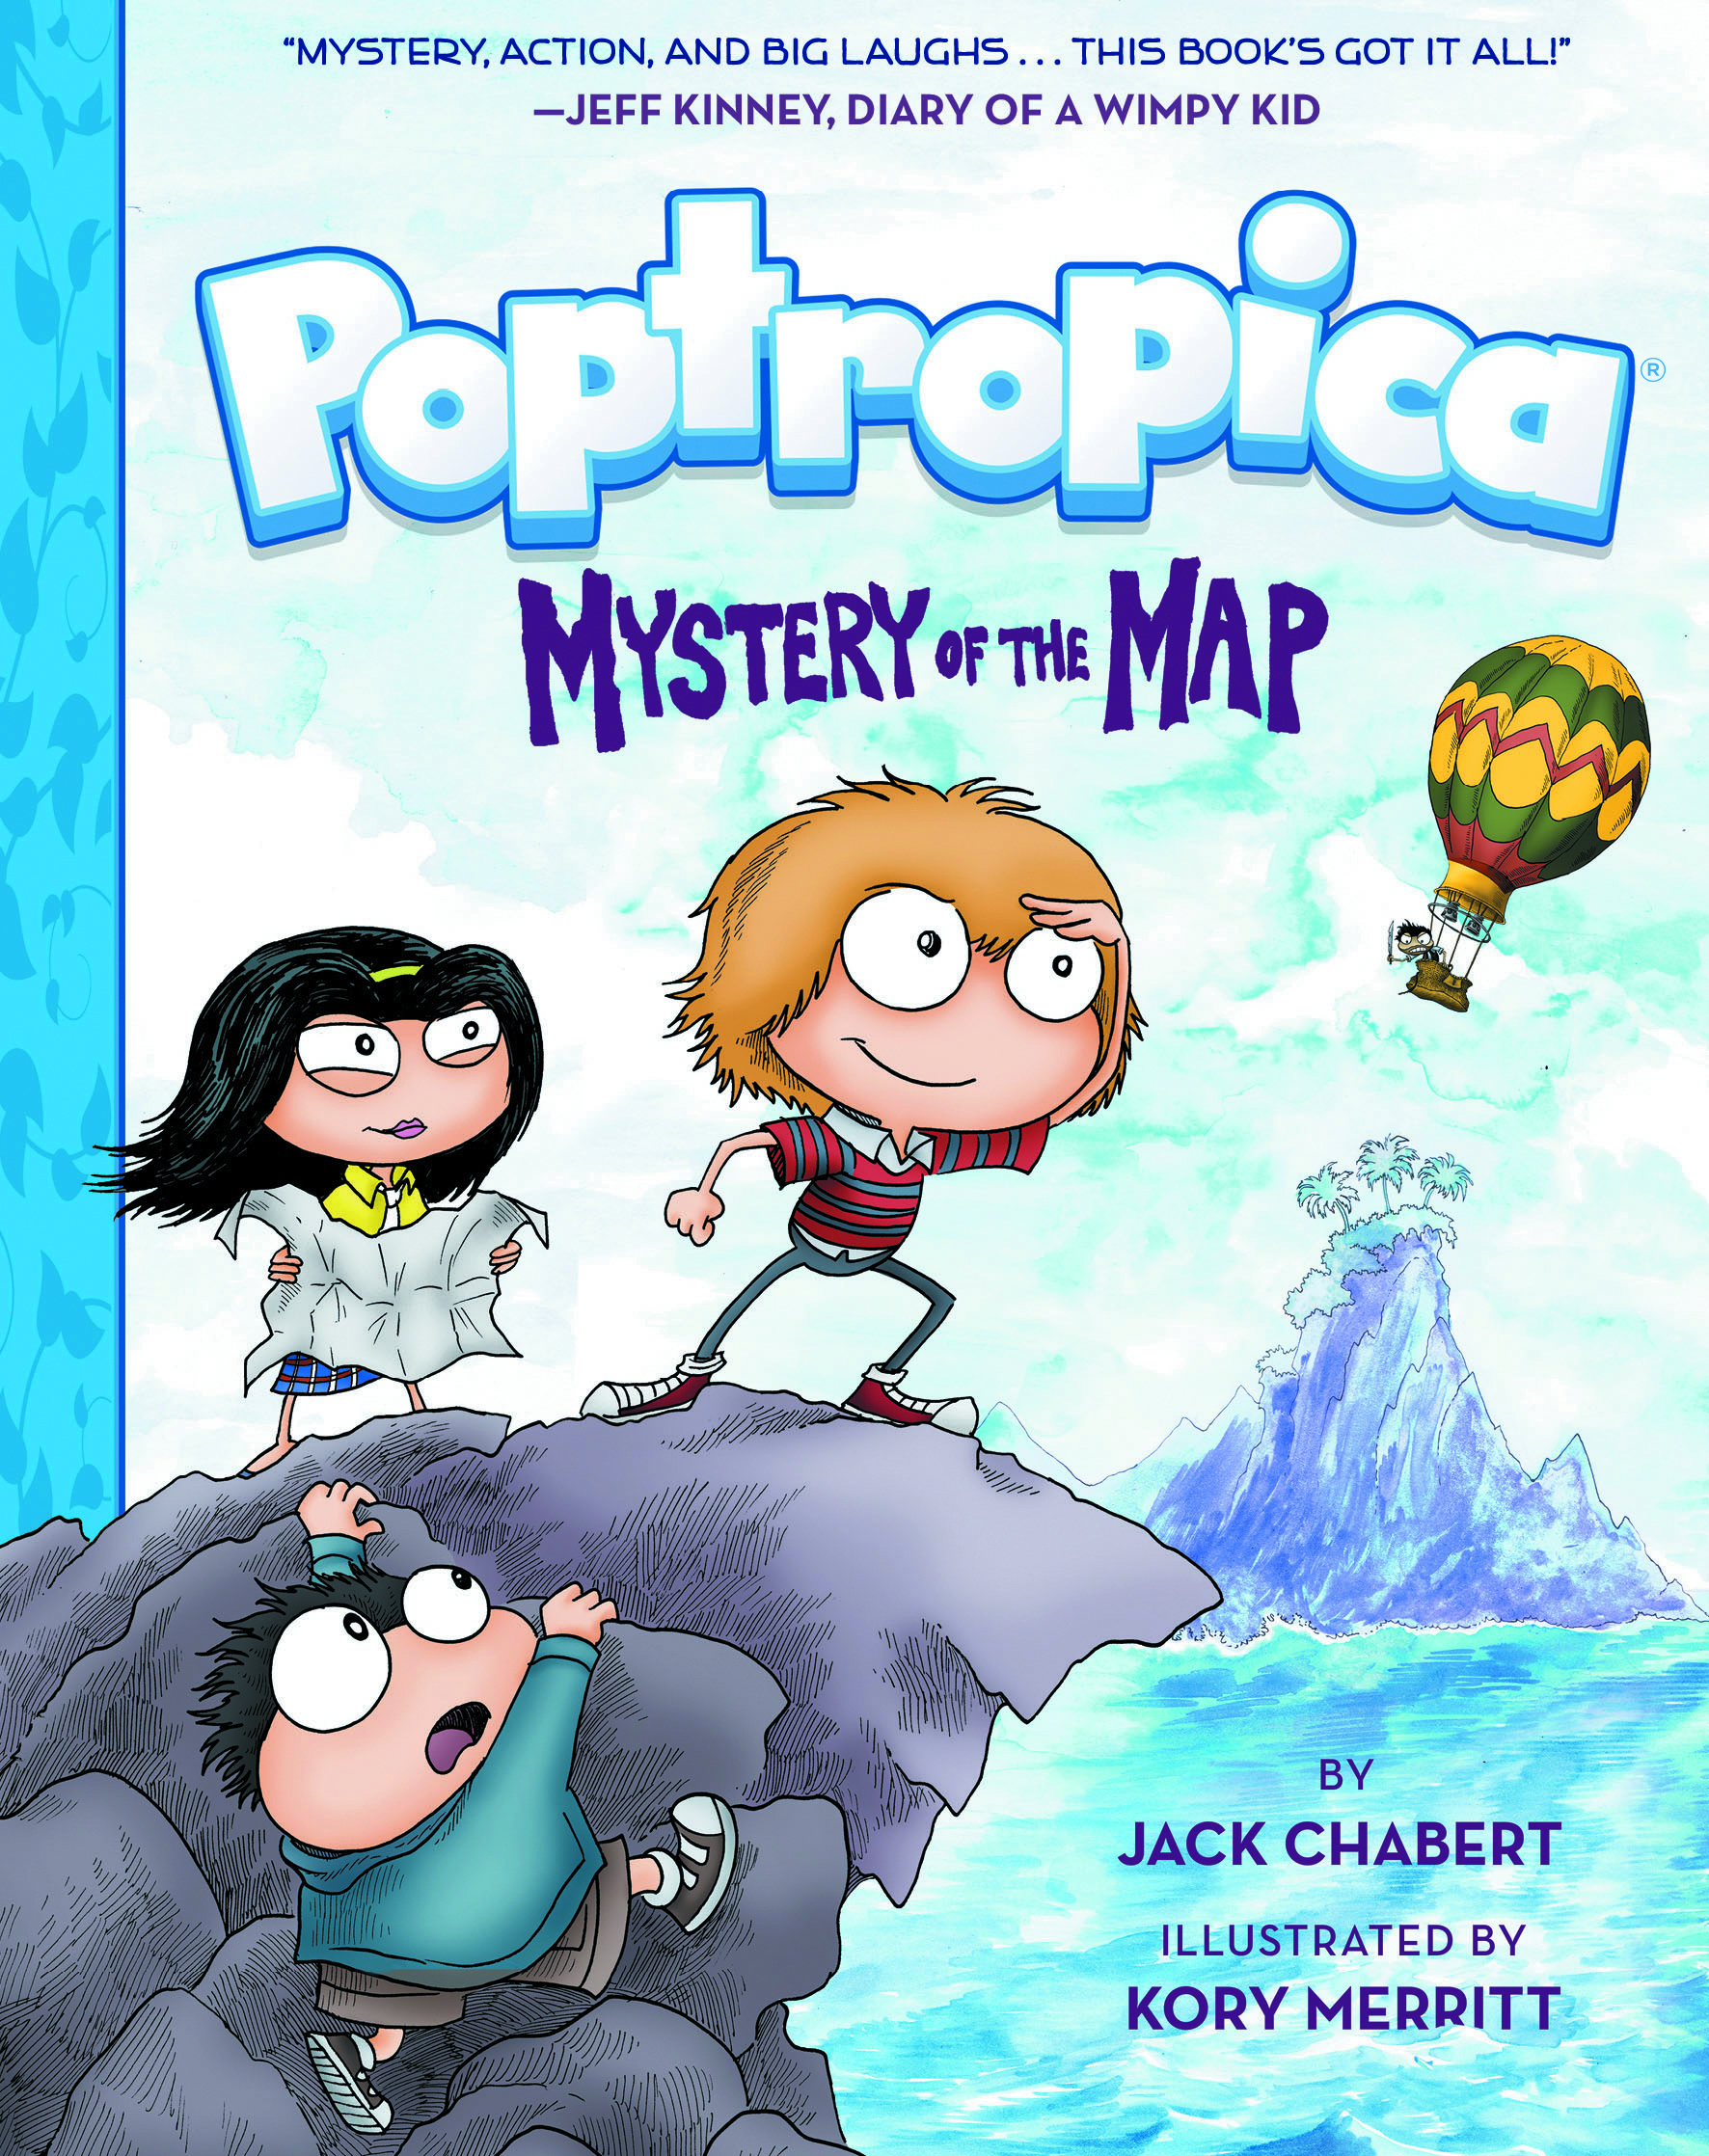 POPTROPICA BOOK 01 MYSTERY OF THE MAP